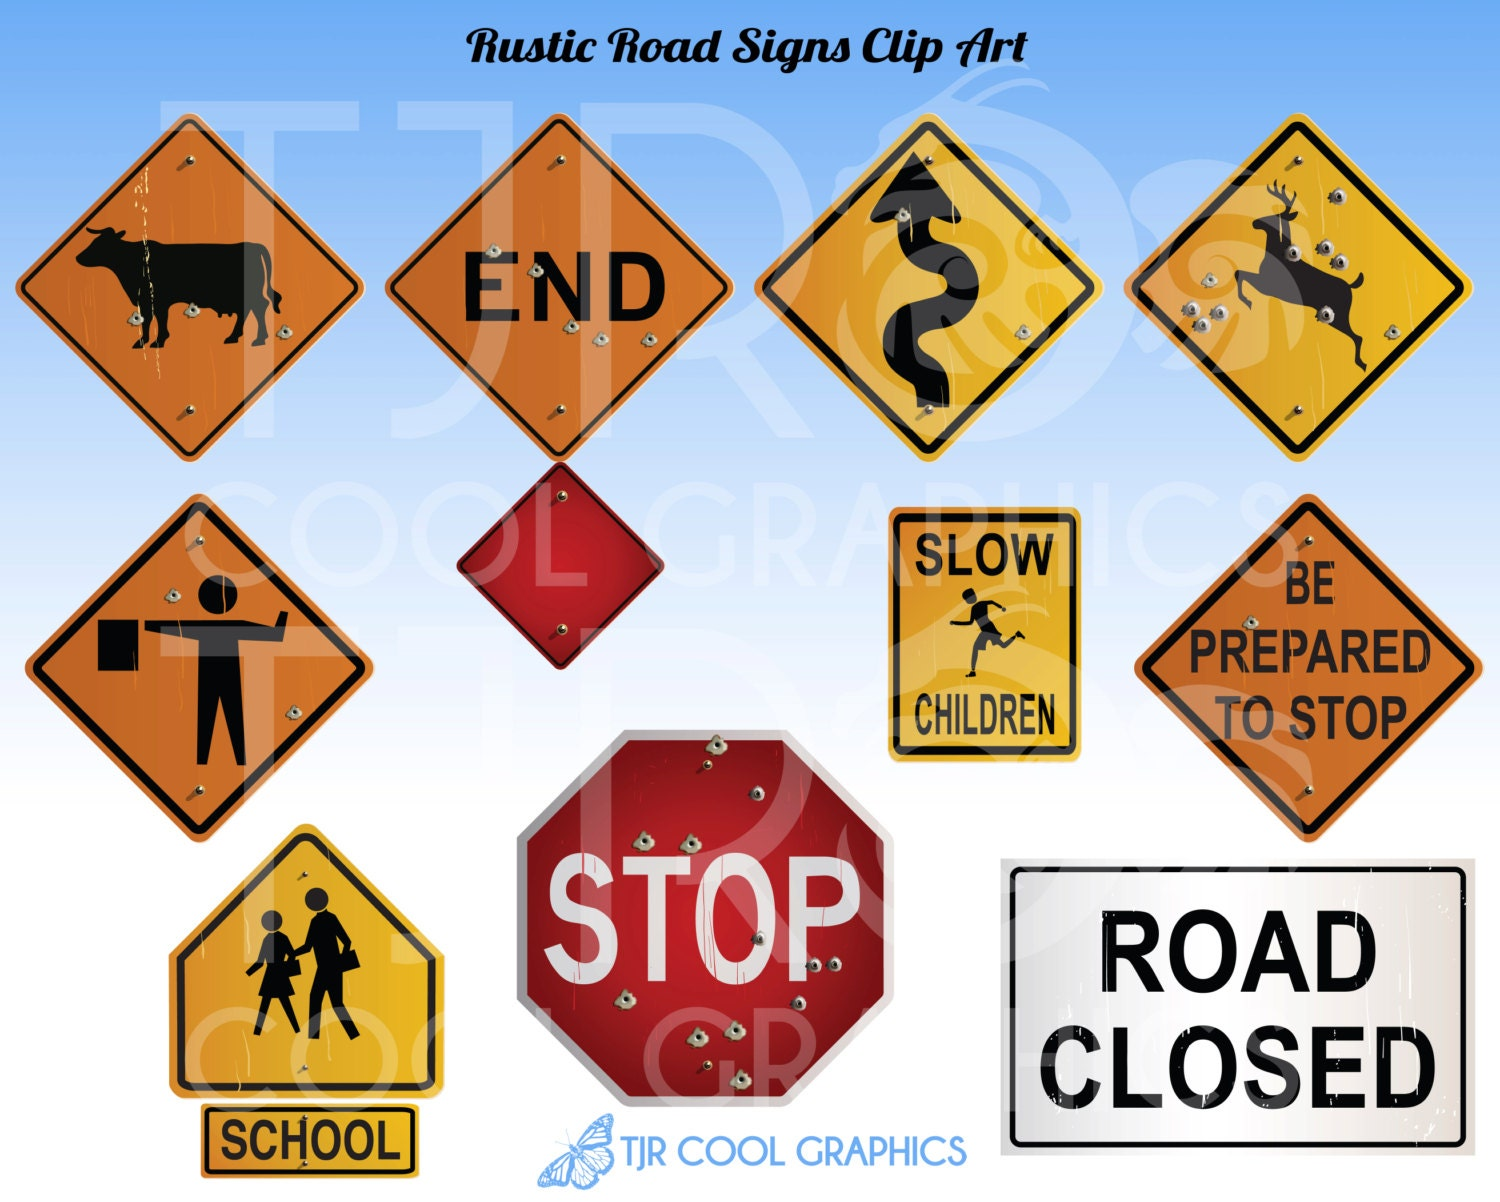 rustic road signs clipart construction clip art highway